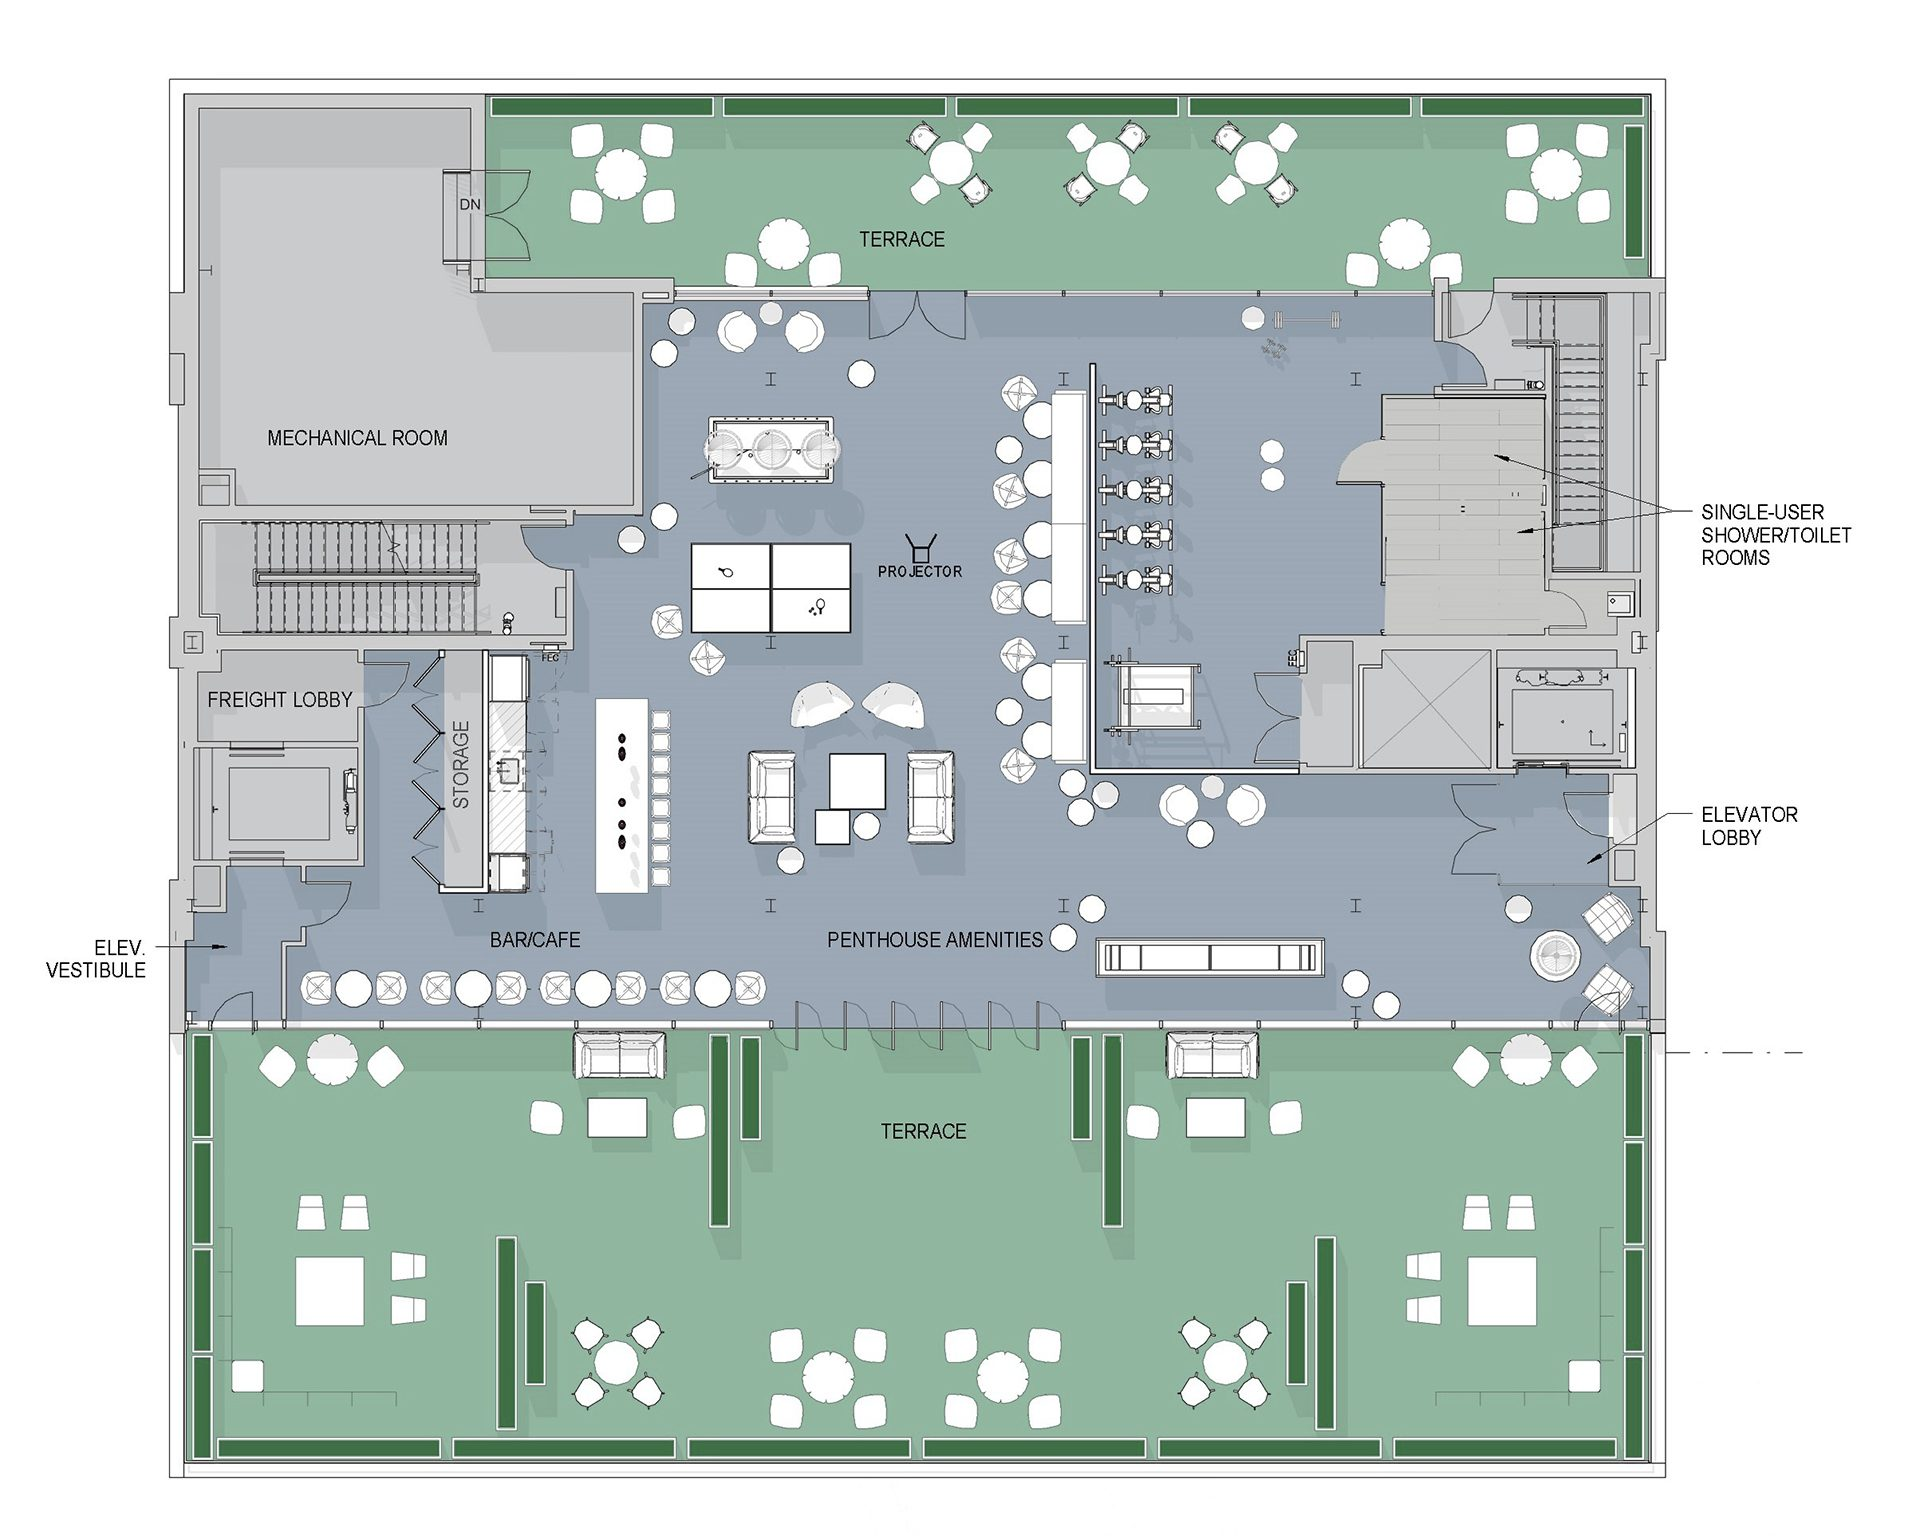 Floorplan illustrating the amenities within the new Peloton Headquarters